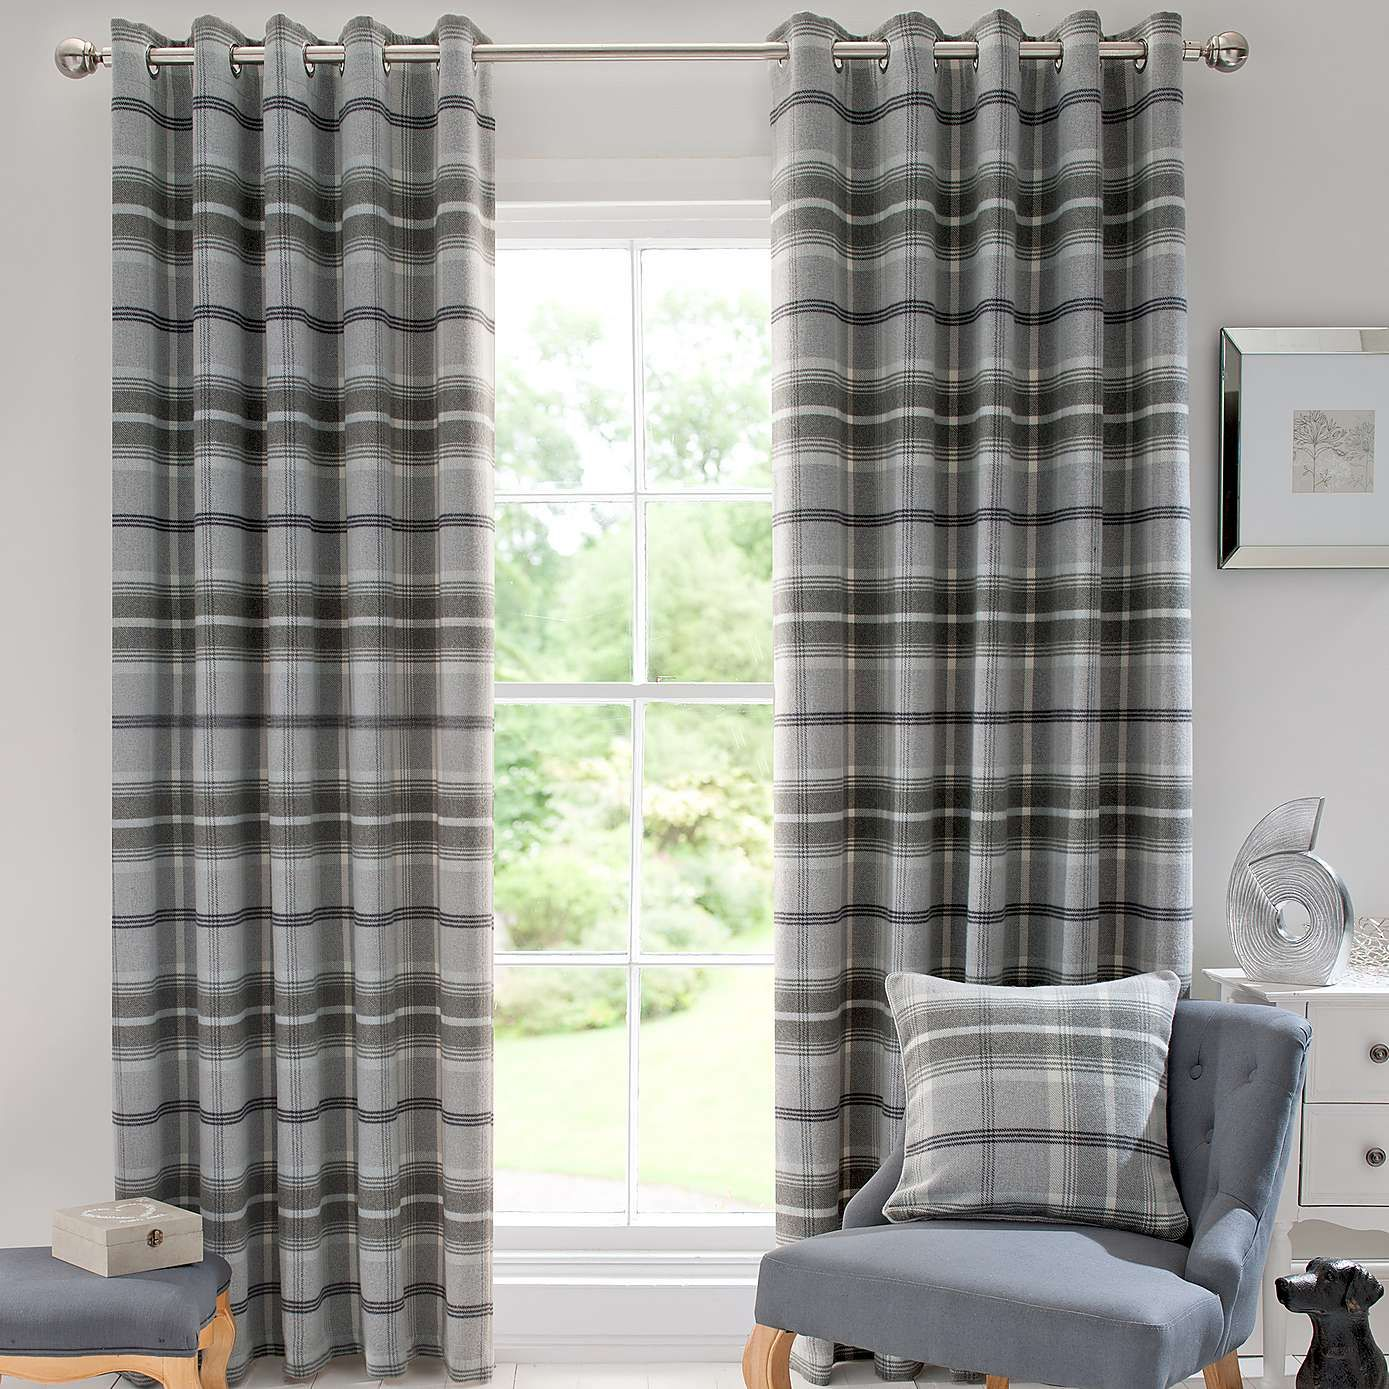 Windsor teal eyelet curtains harry corry limited - Dove Grey Highland Check Lined Eyelet Curtains Dunelm